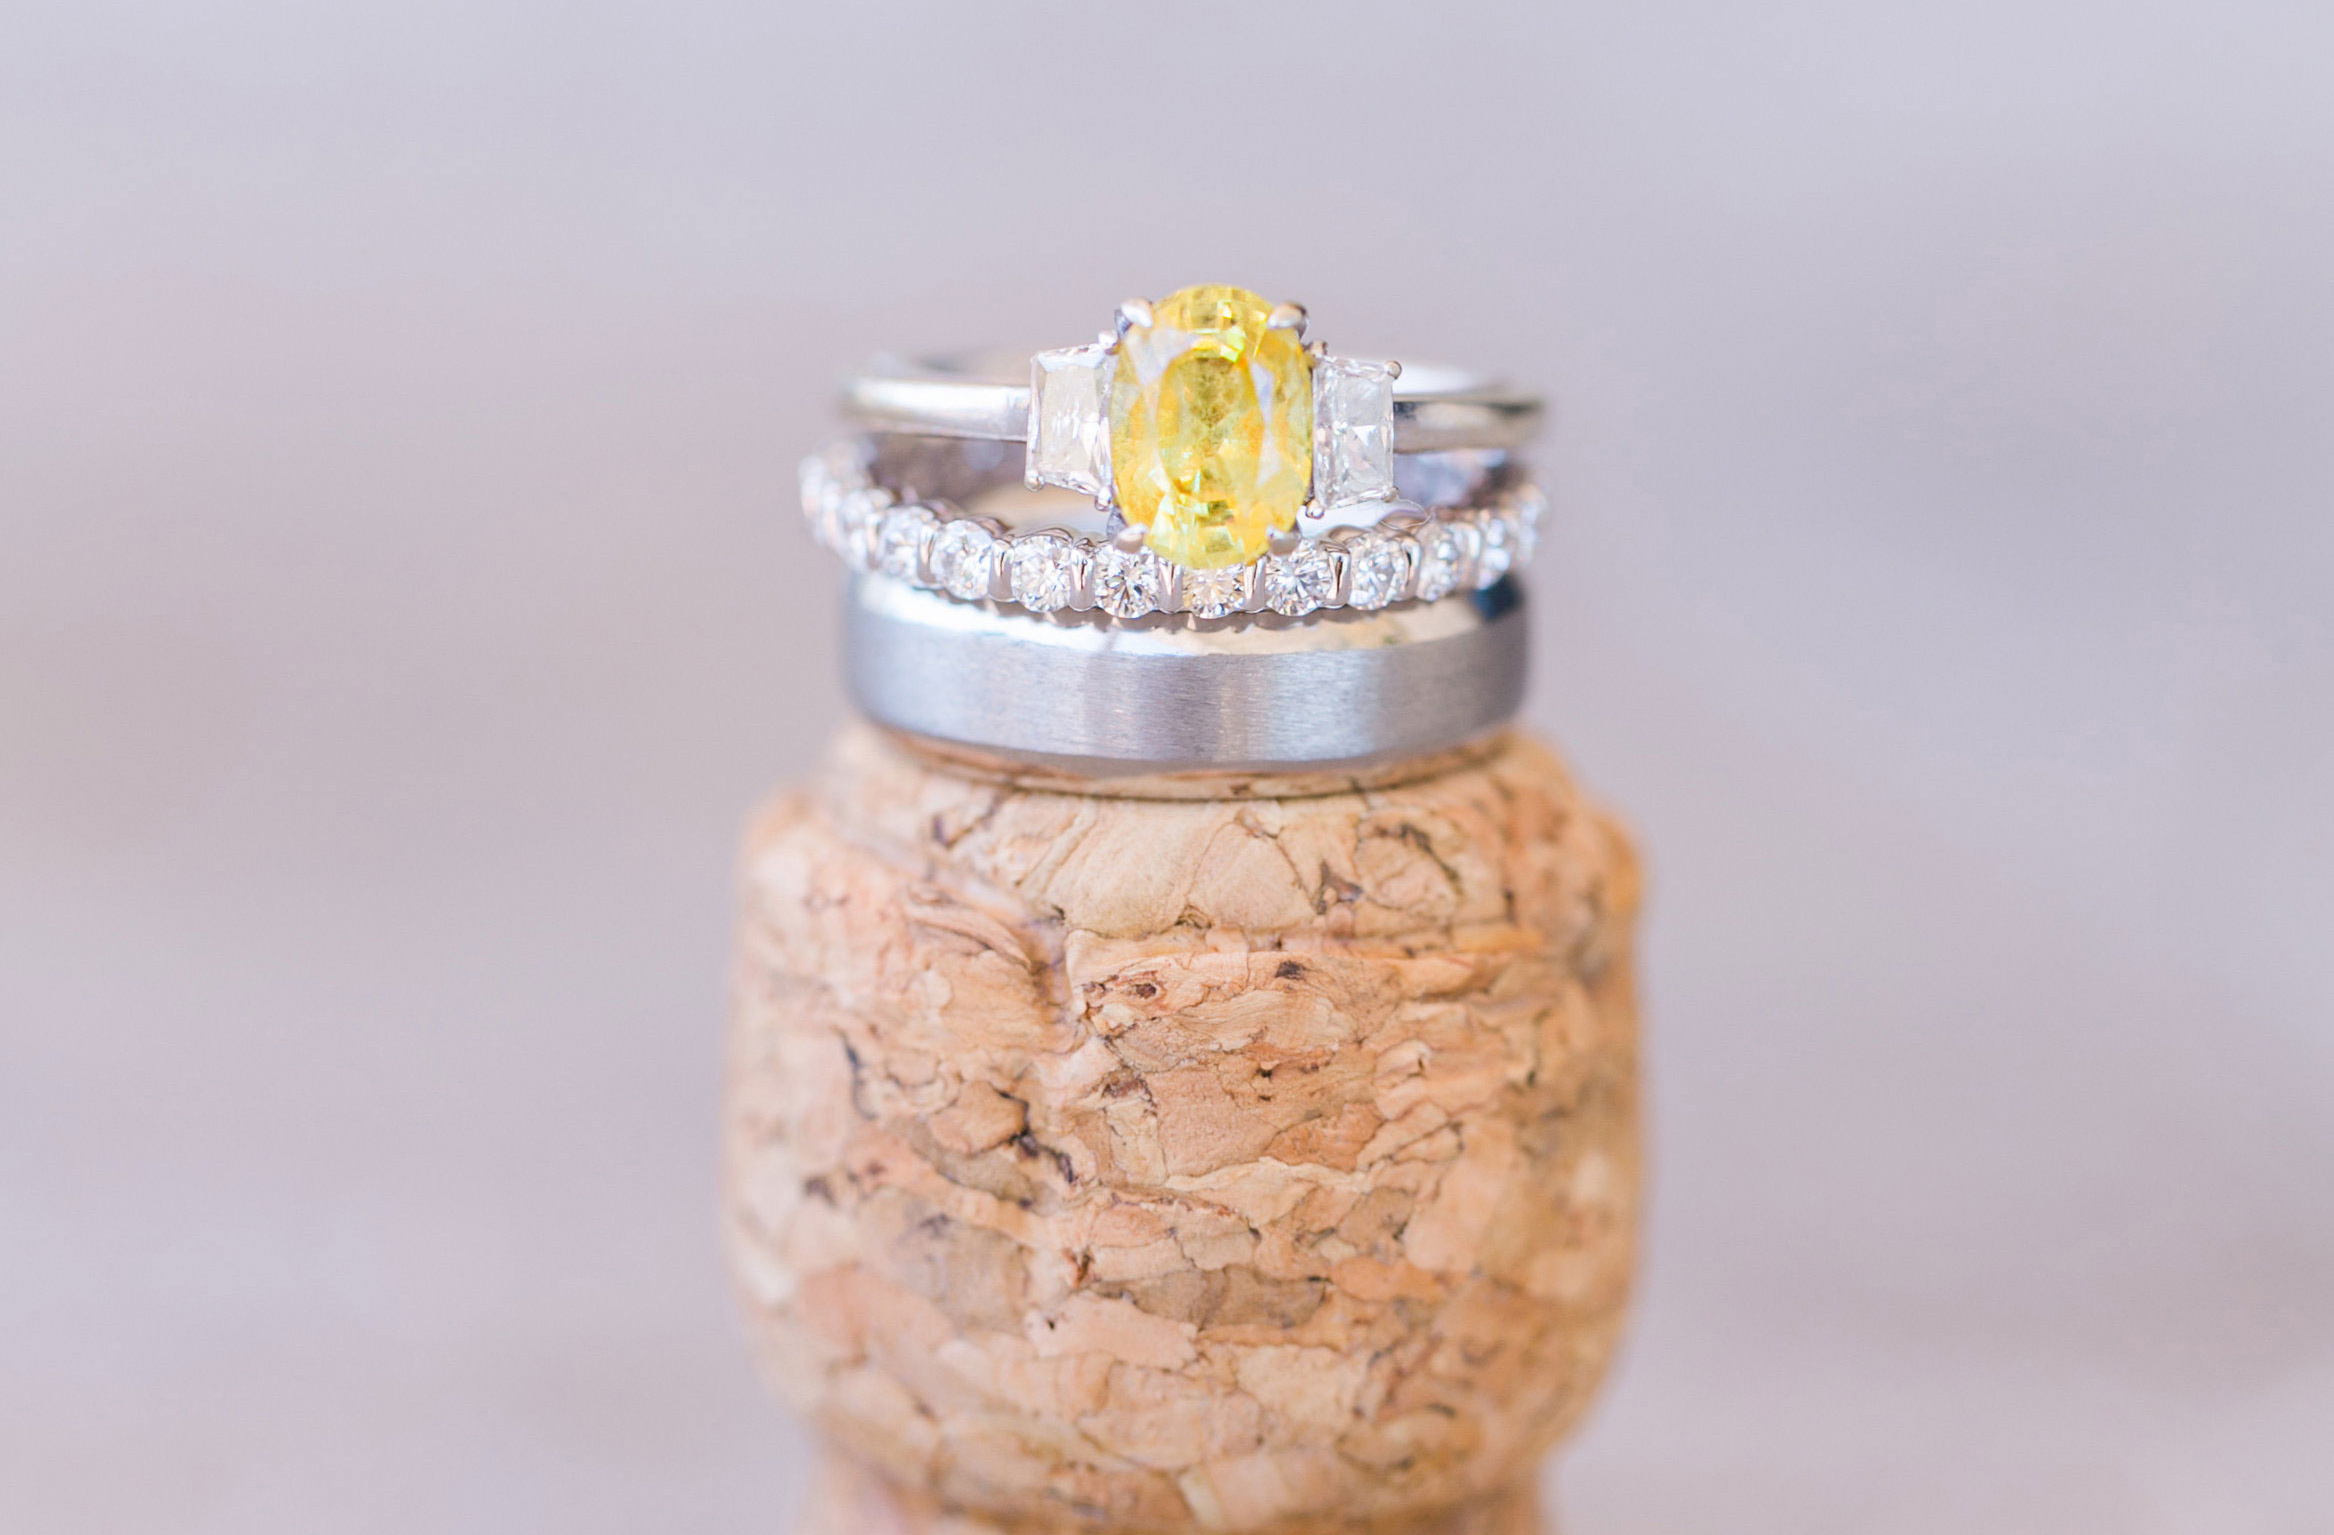 jesse plemons engaged to kirsten dunst engagement ring inspiration yellow oval diamond side stones